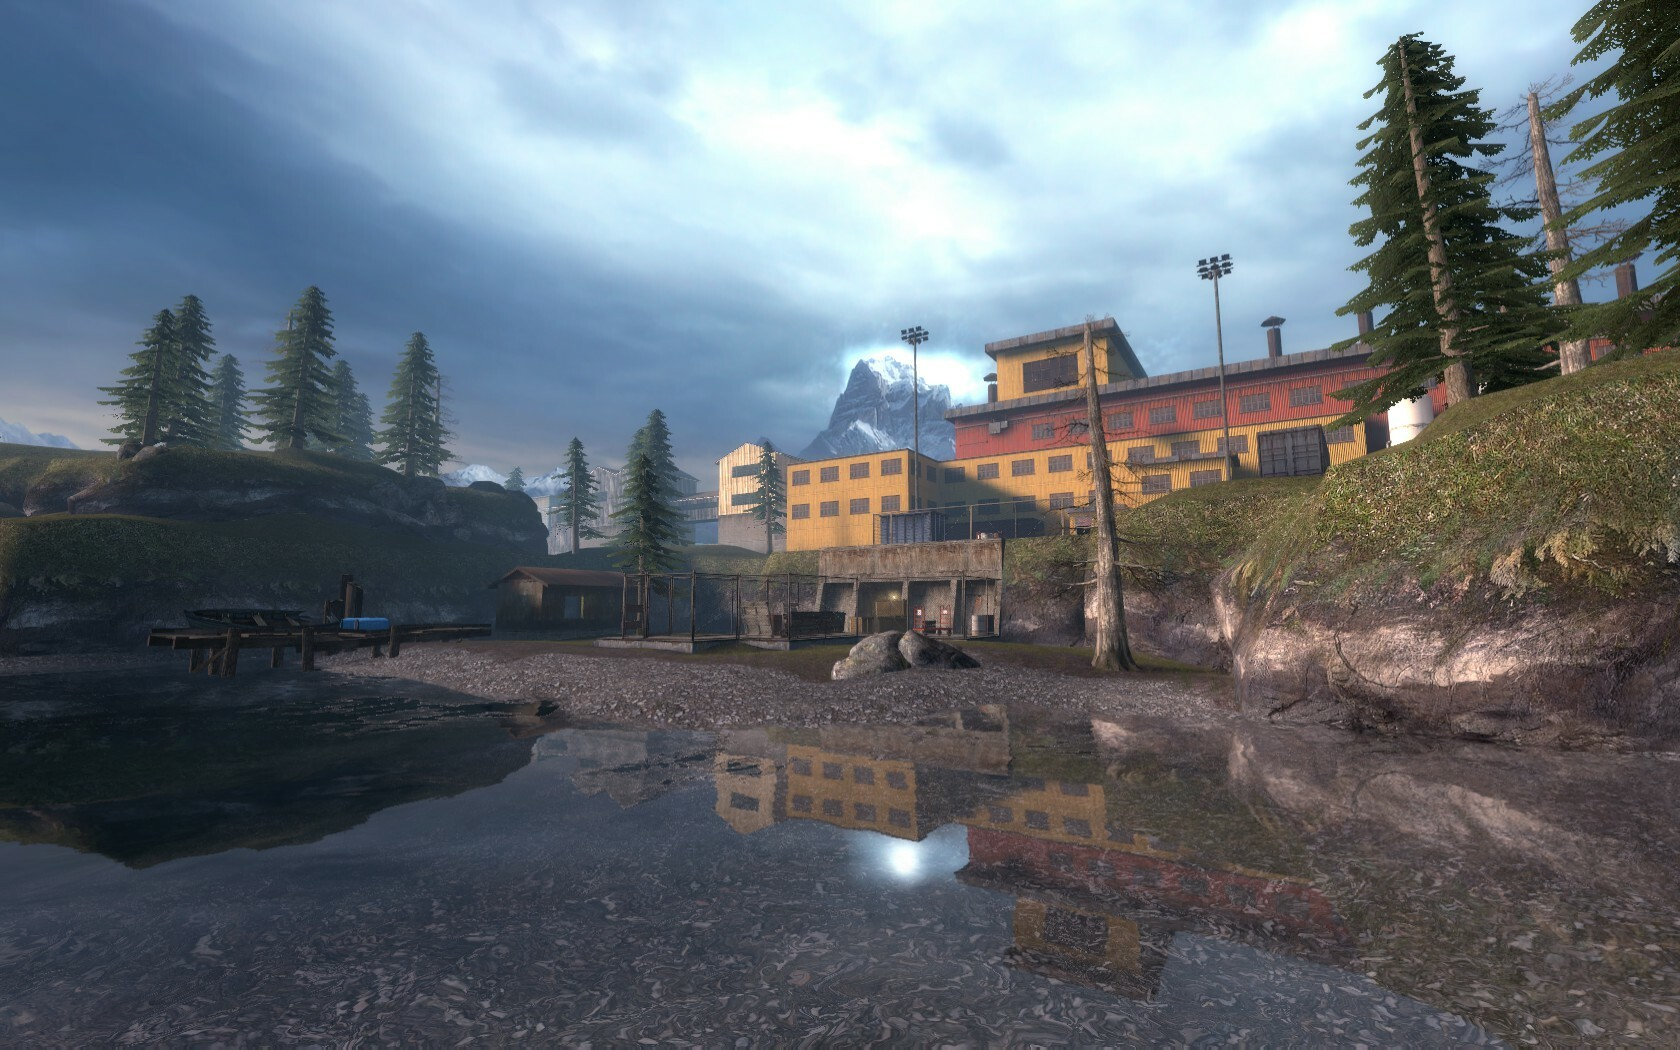 The point of the level where the player starts had to be distinctive. They can view the building in which they are entering and it is visually appealing.